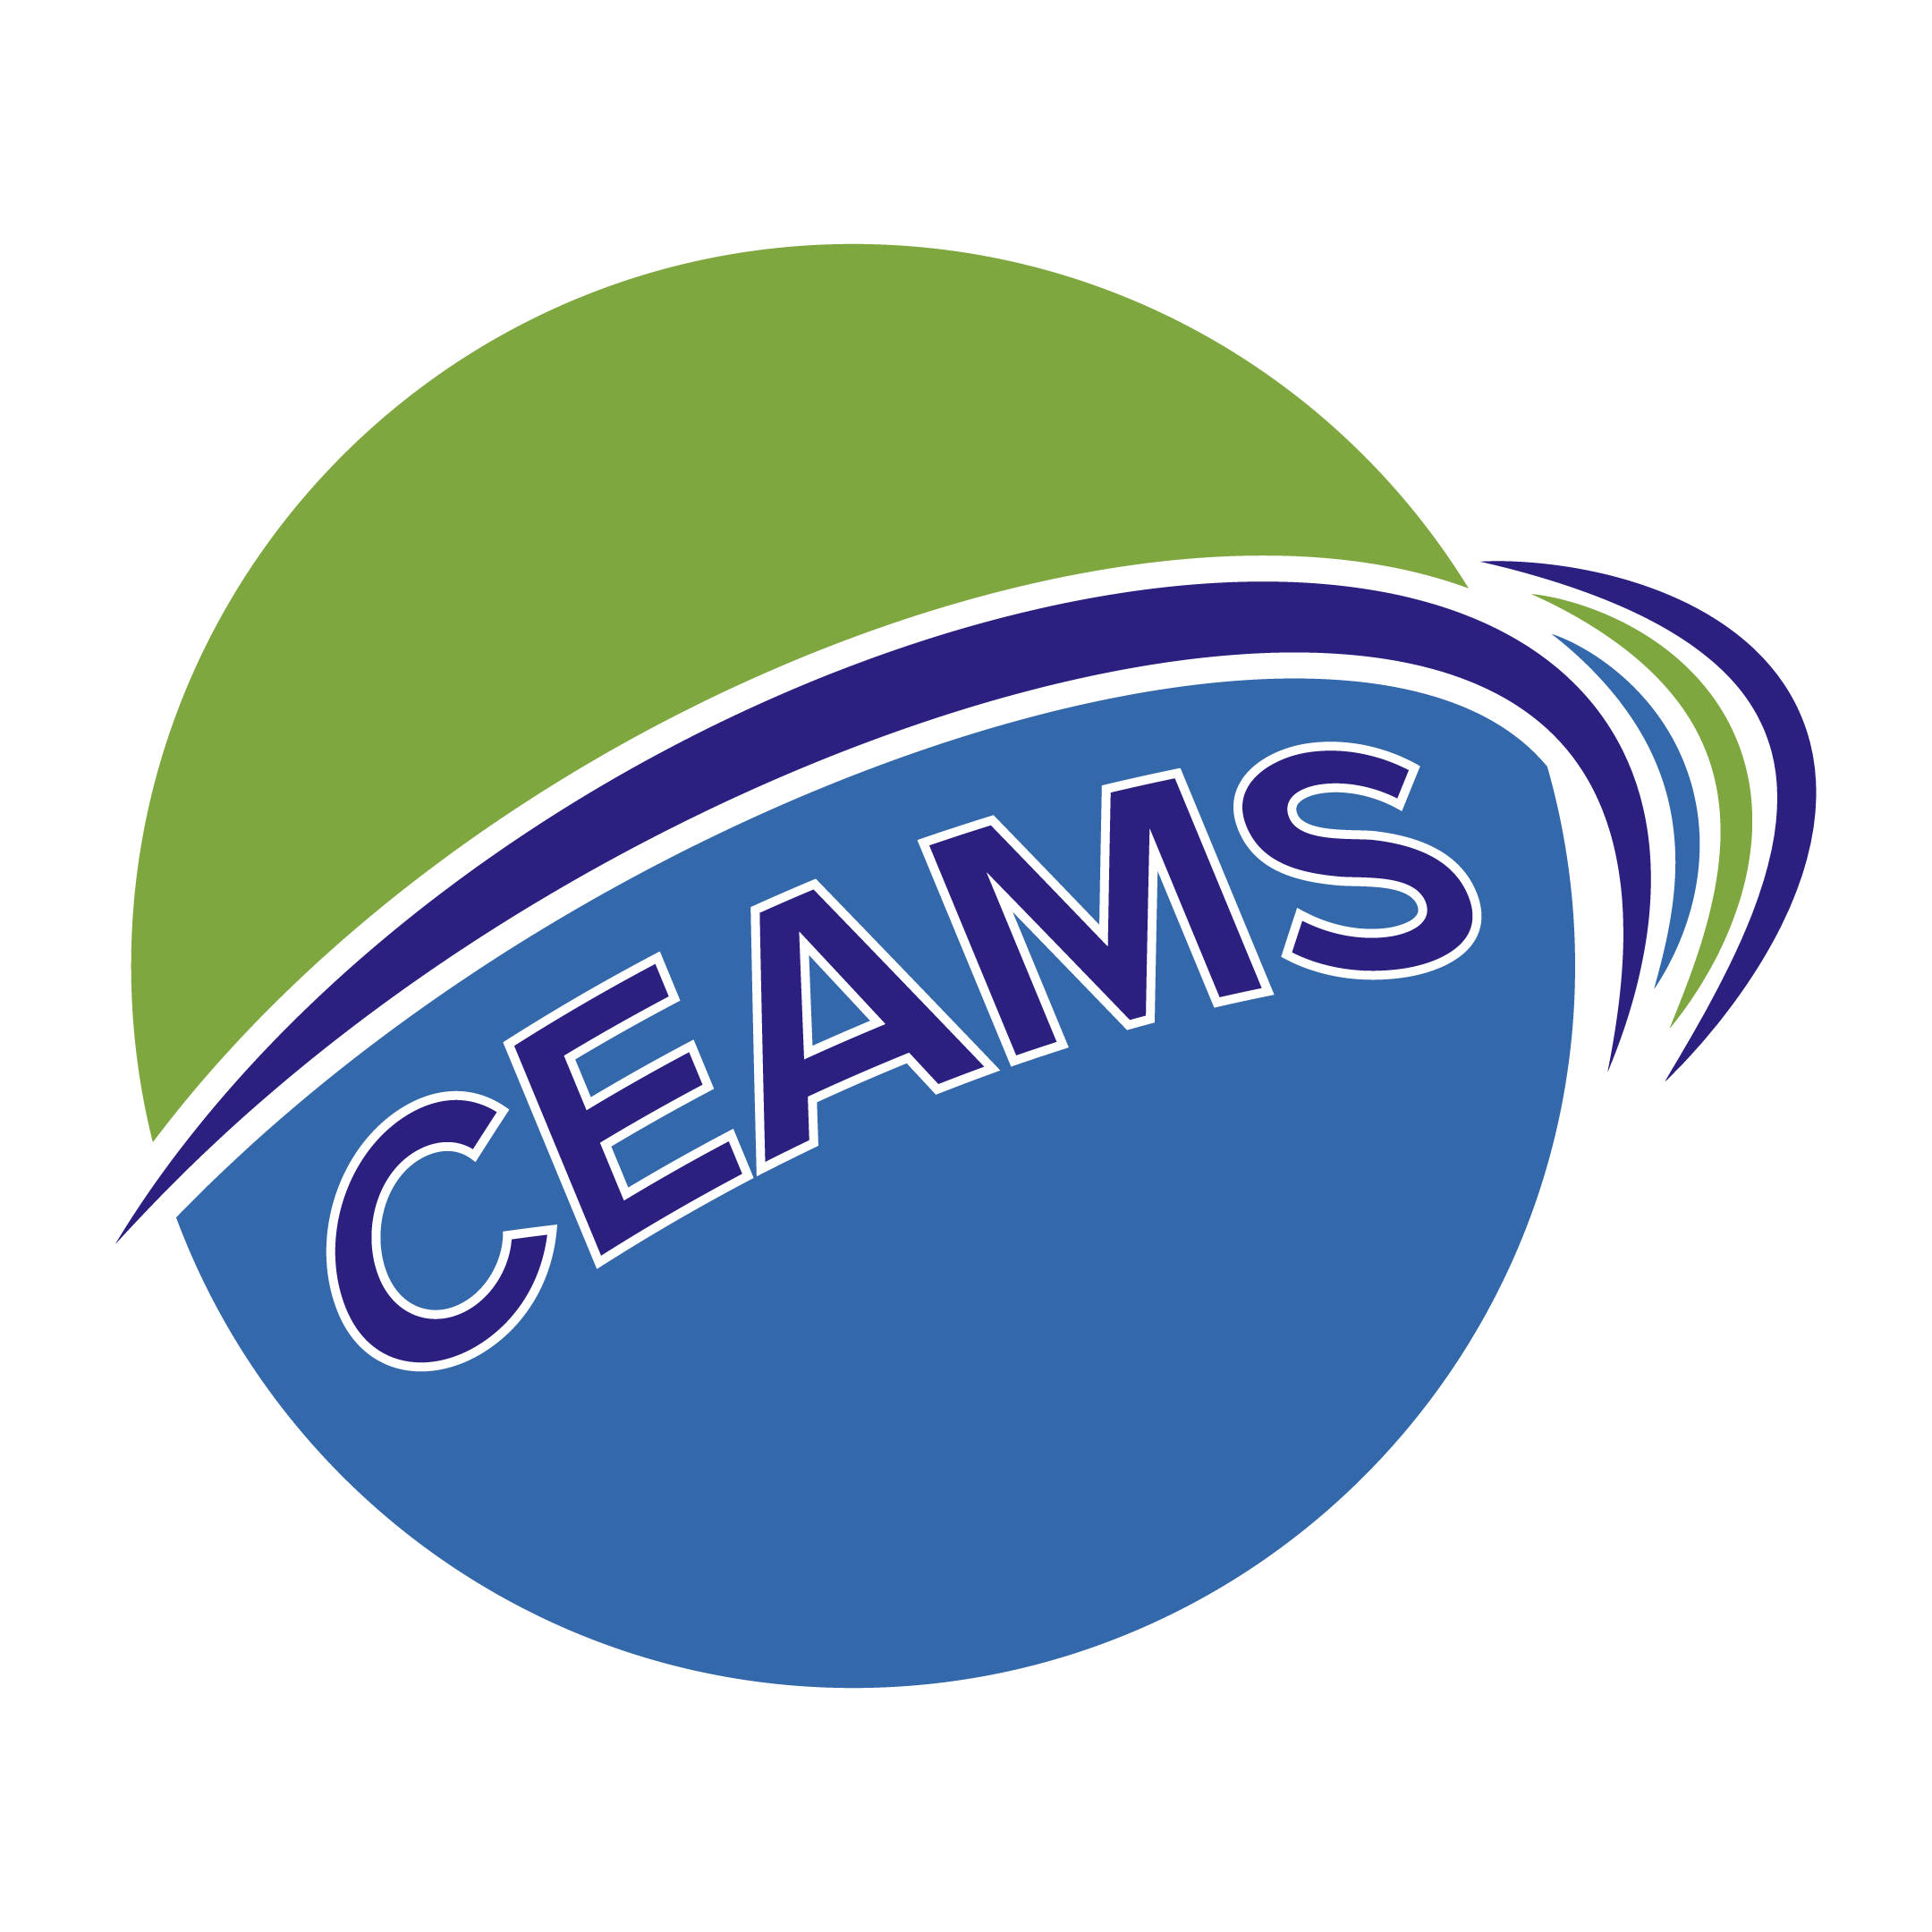 CEAMS Blog